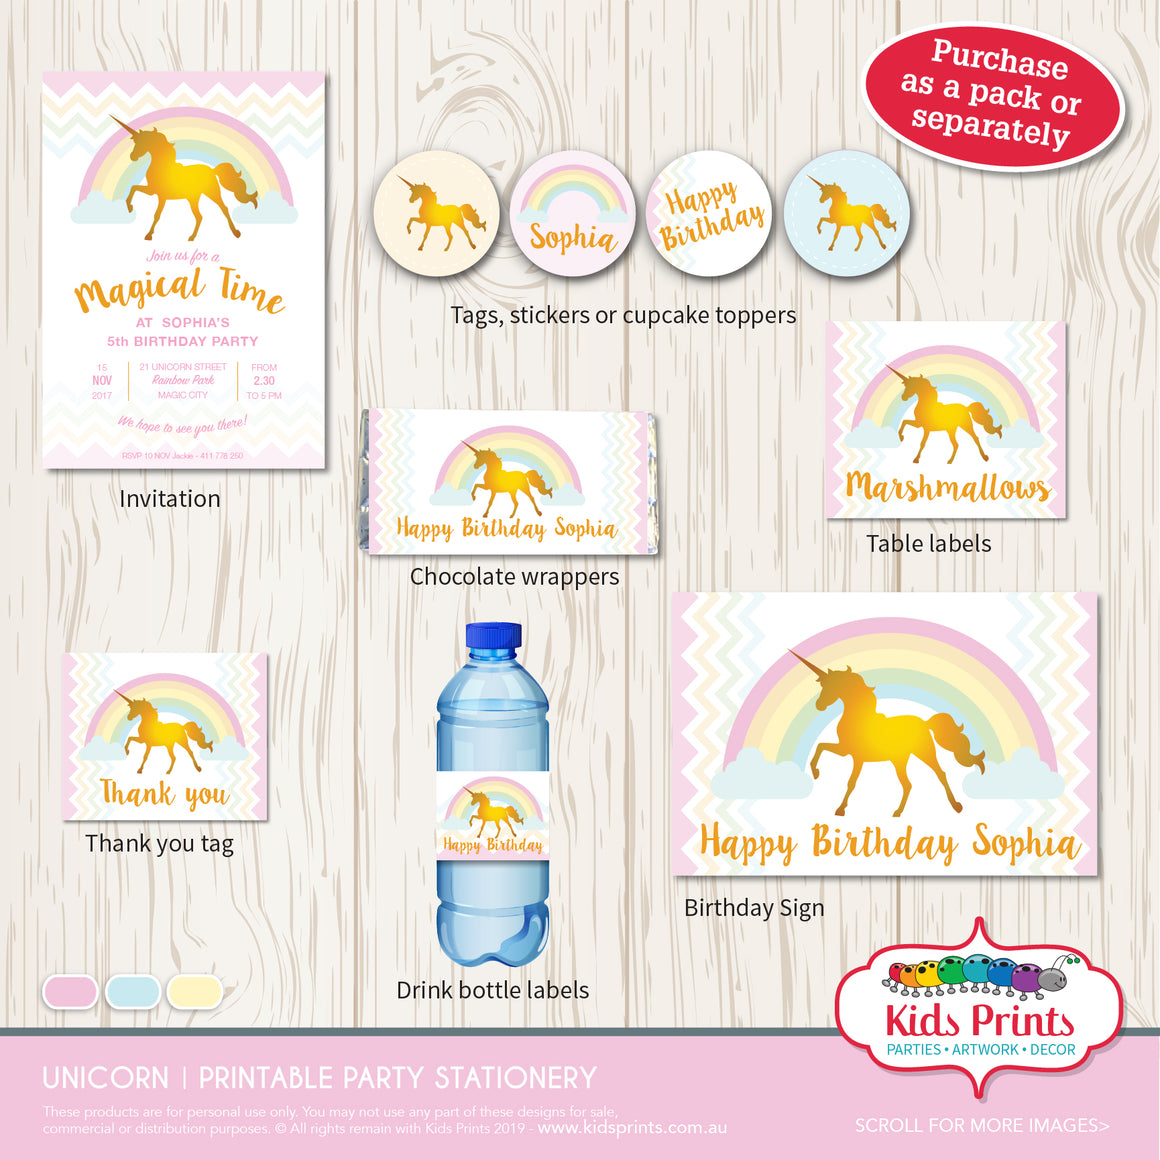 Unicorn Theme - Printable Party Stationery